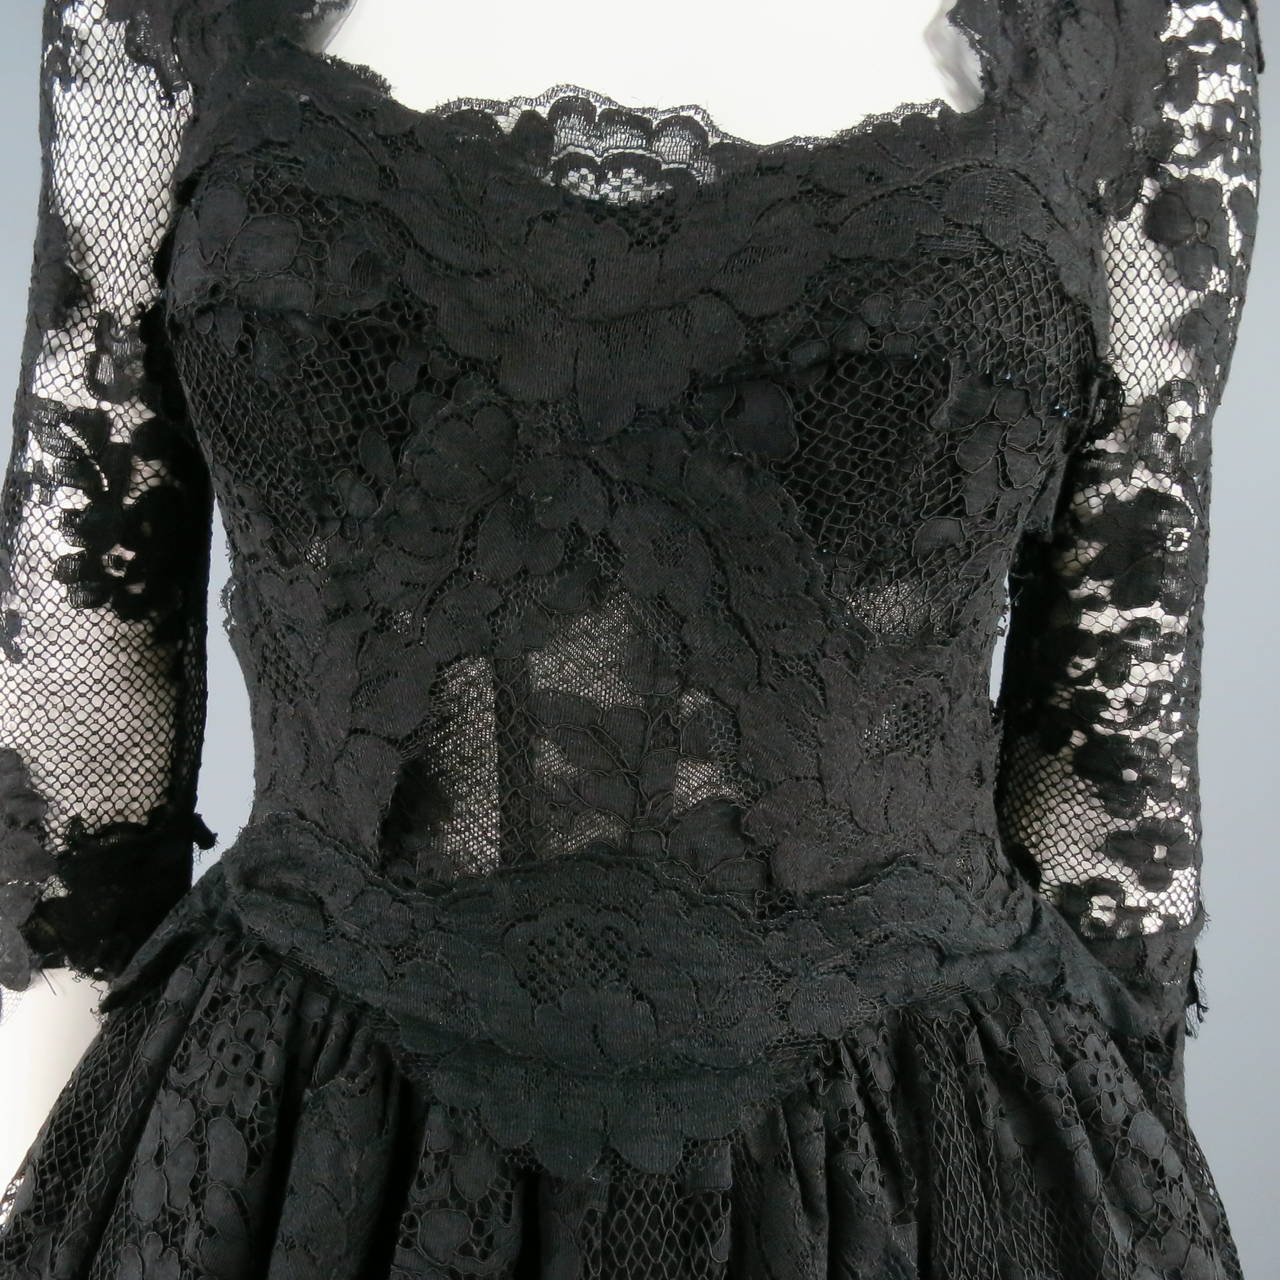 DOLCE & GABBANA Size 6 Black Lace Cocktail Dress For Sale 2